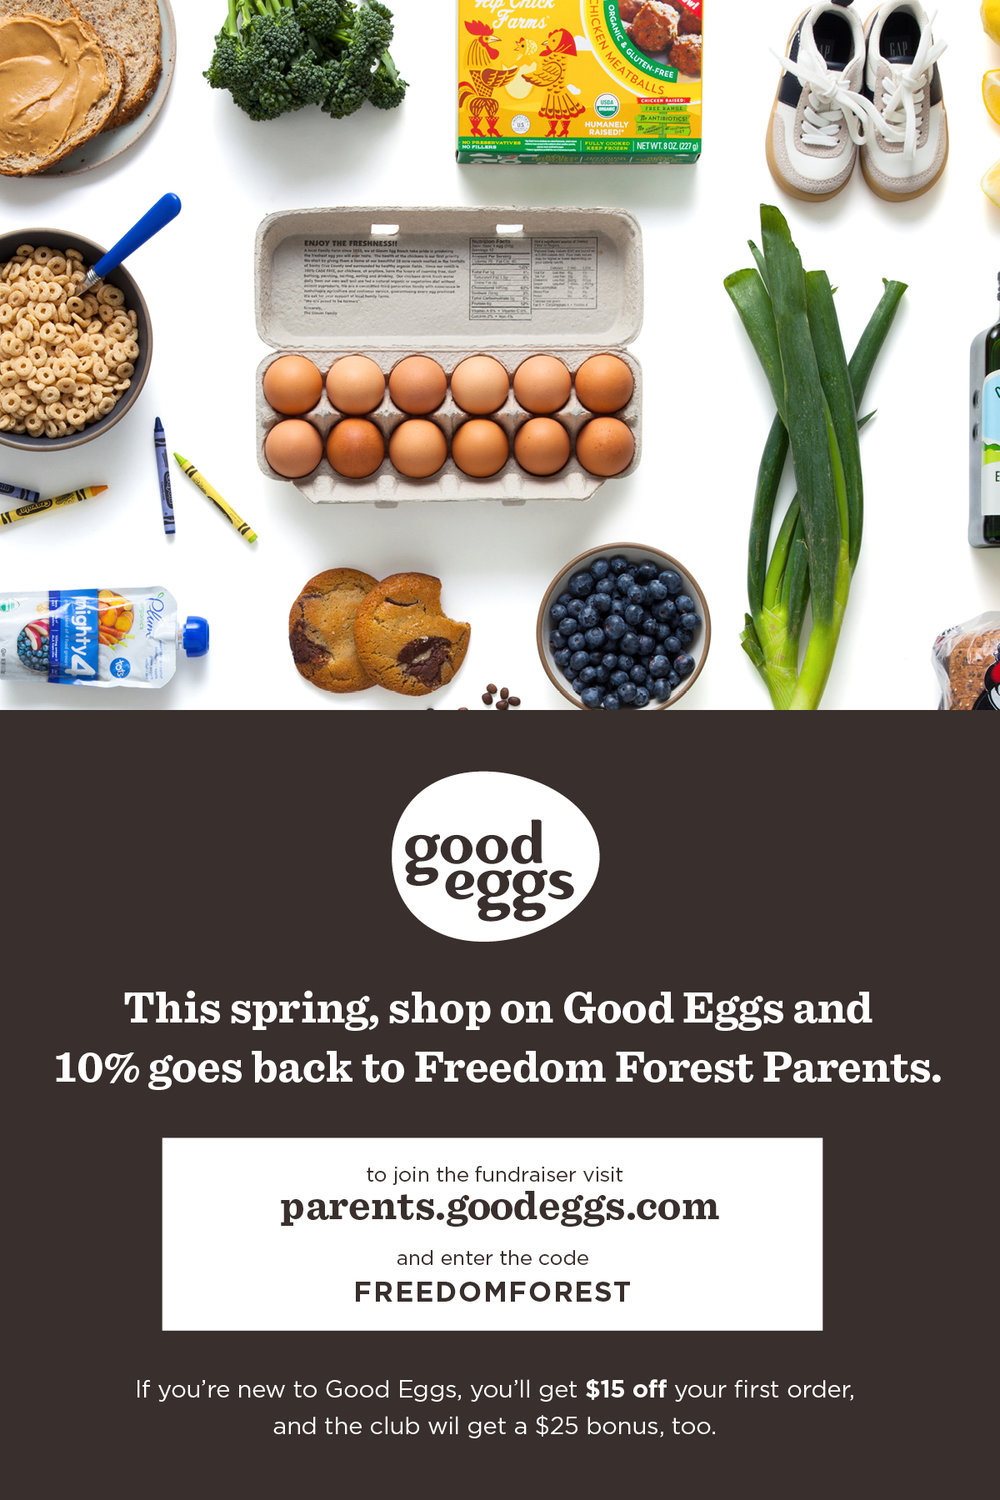 Digital Flyer_Good Eggs Fundraiser_Freedom Forest.jpg